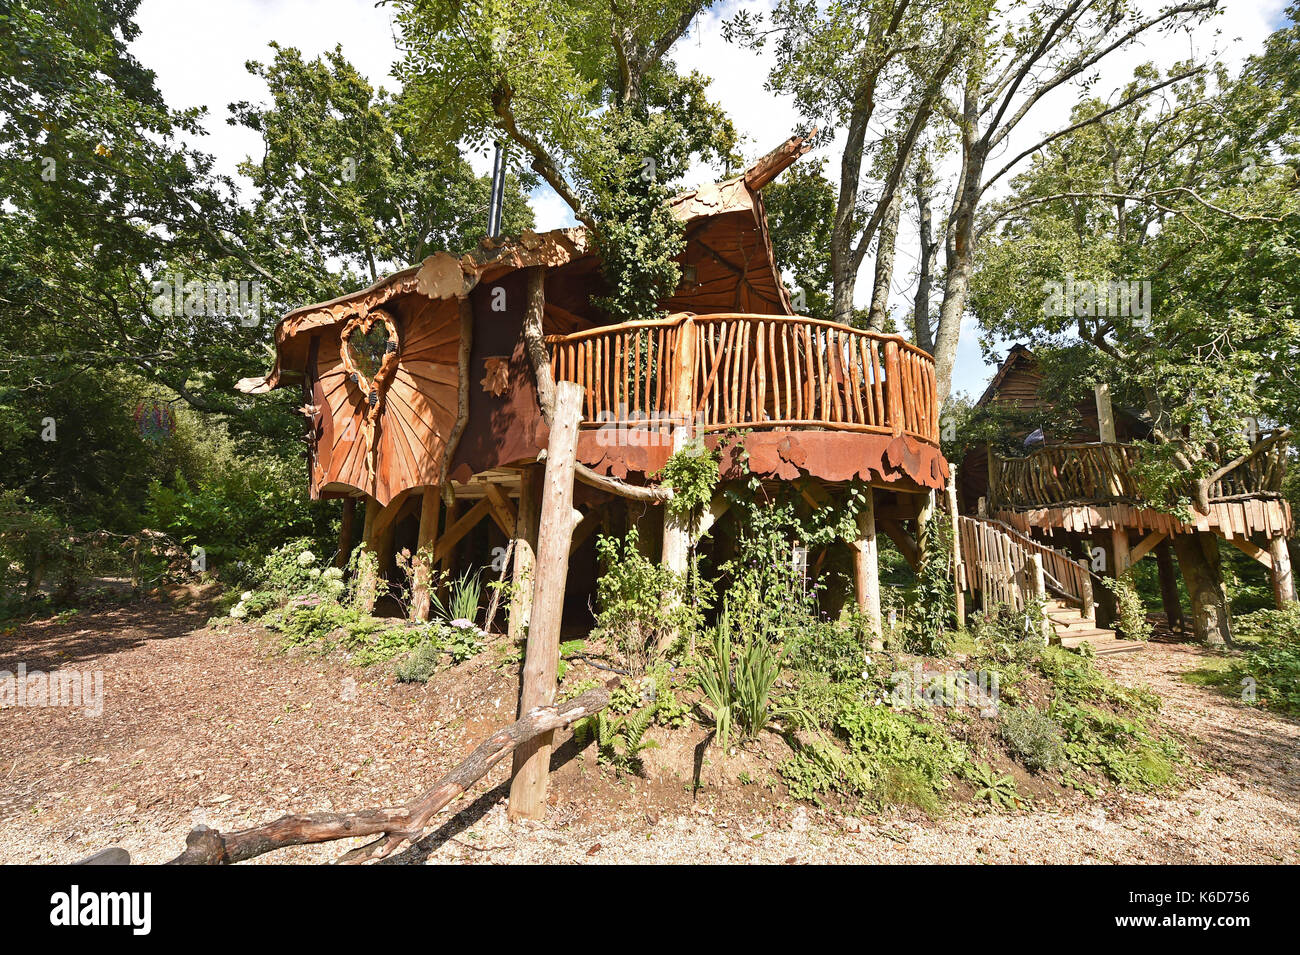 Ditchling Sussex, UK. 12th Sep, 2017. A new tree house has been unveiled at Blackberry Wood campsite near Ditchling in Sussex . The new upmarket tree house called Piggledy has been built by campsite owner Tim Johnson and is larger than the original next door tree house called Higgledy . The quirky campsite is well known for having a London bus and an old Wessex helicopter where people can also stay in peaceful surroundings nestled just north of the South Downs National Park Credit: Simon Dack/Alamy Live News - Stock Image